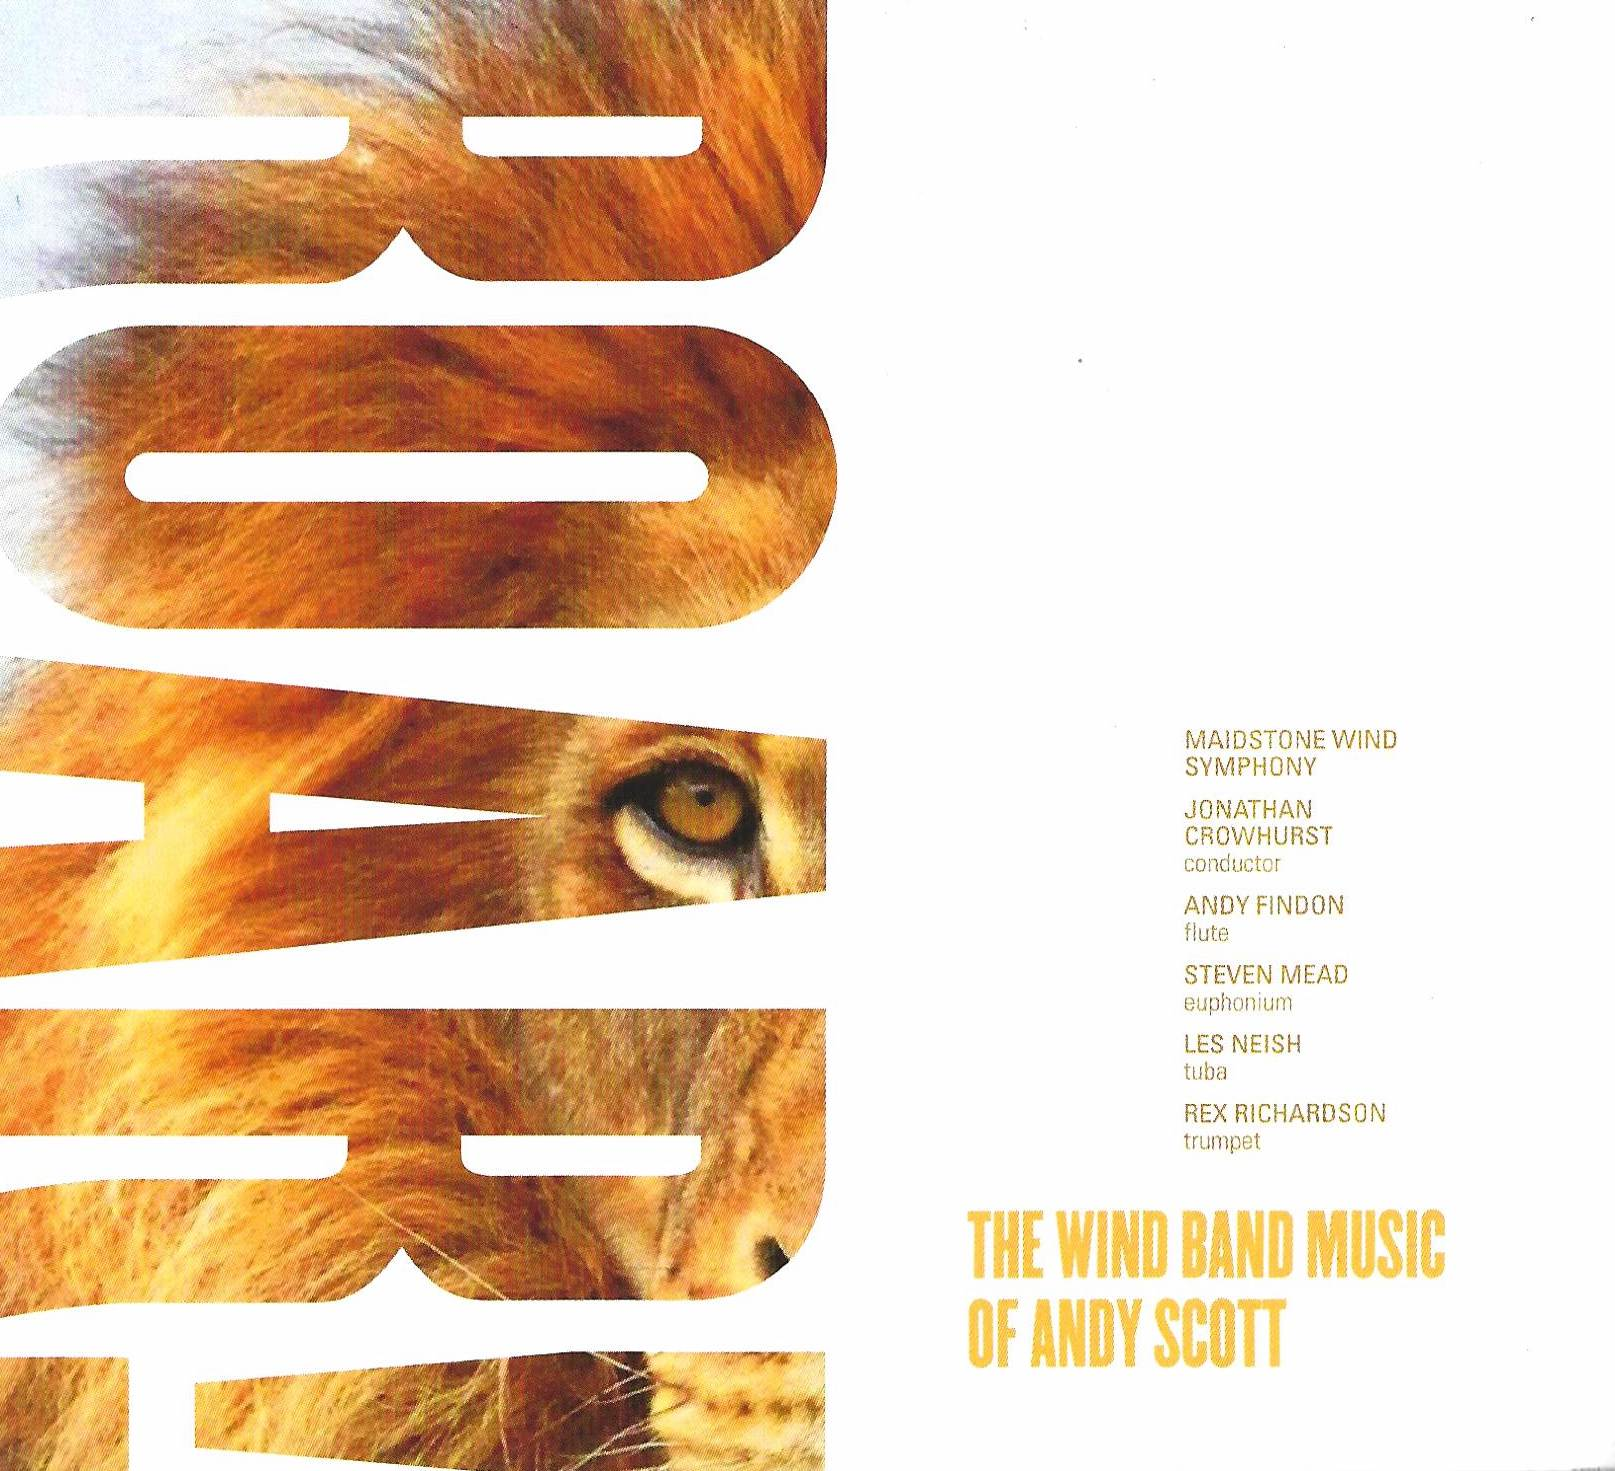 CD - ROAR! - The Wind Band Music of Andy Scott - Steven Mead, Rex Richardson, Les Neish, Andy Findon and the Maidstone Wind Symphony